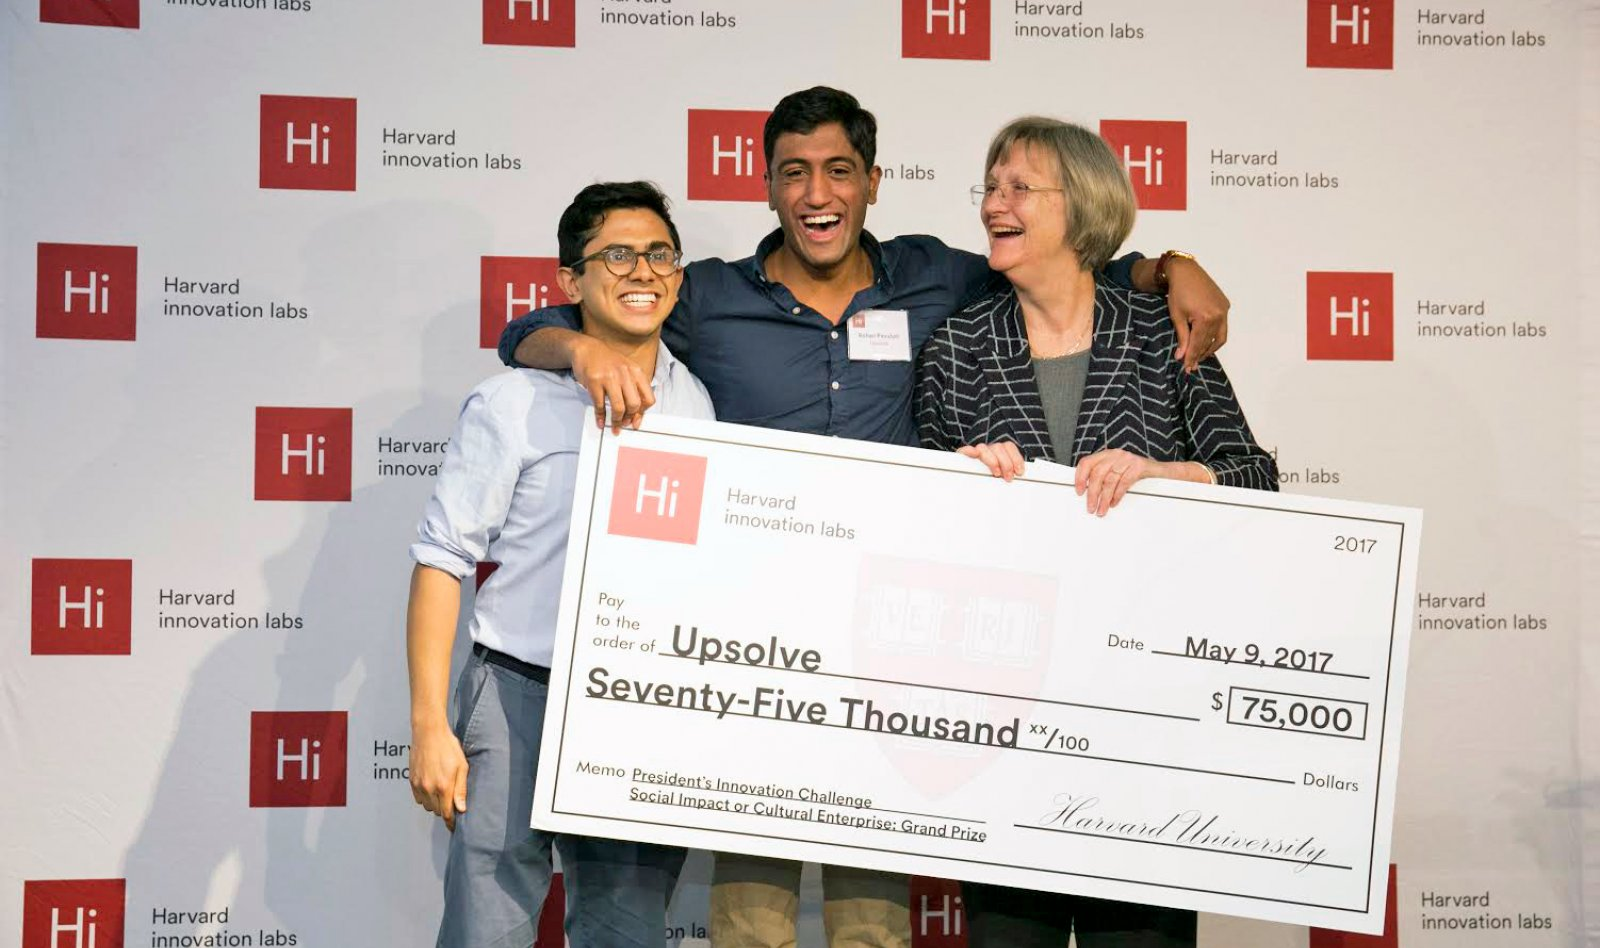 Milton Syed '14 and Rohan Pavuluri '14 accept a prize grant check from Harvard President Drew Faust.